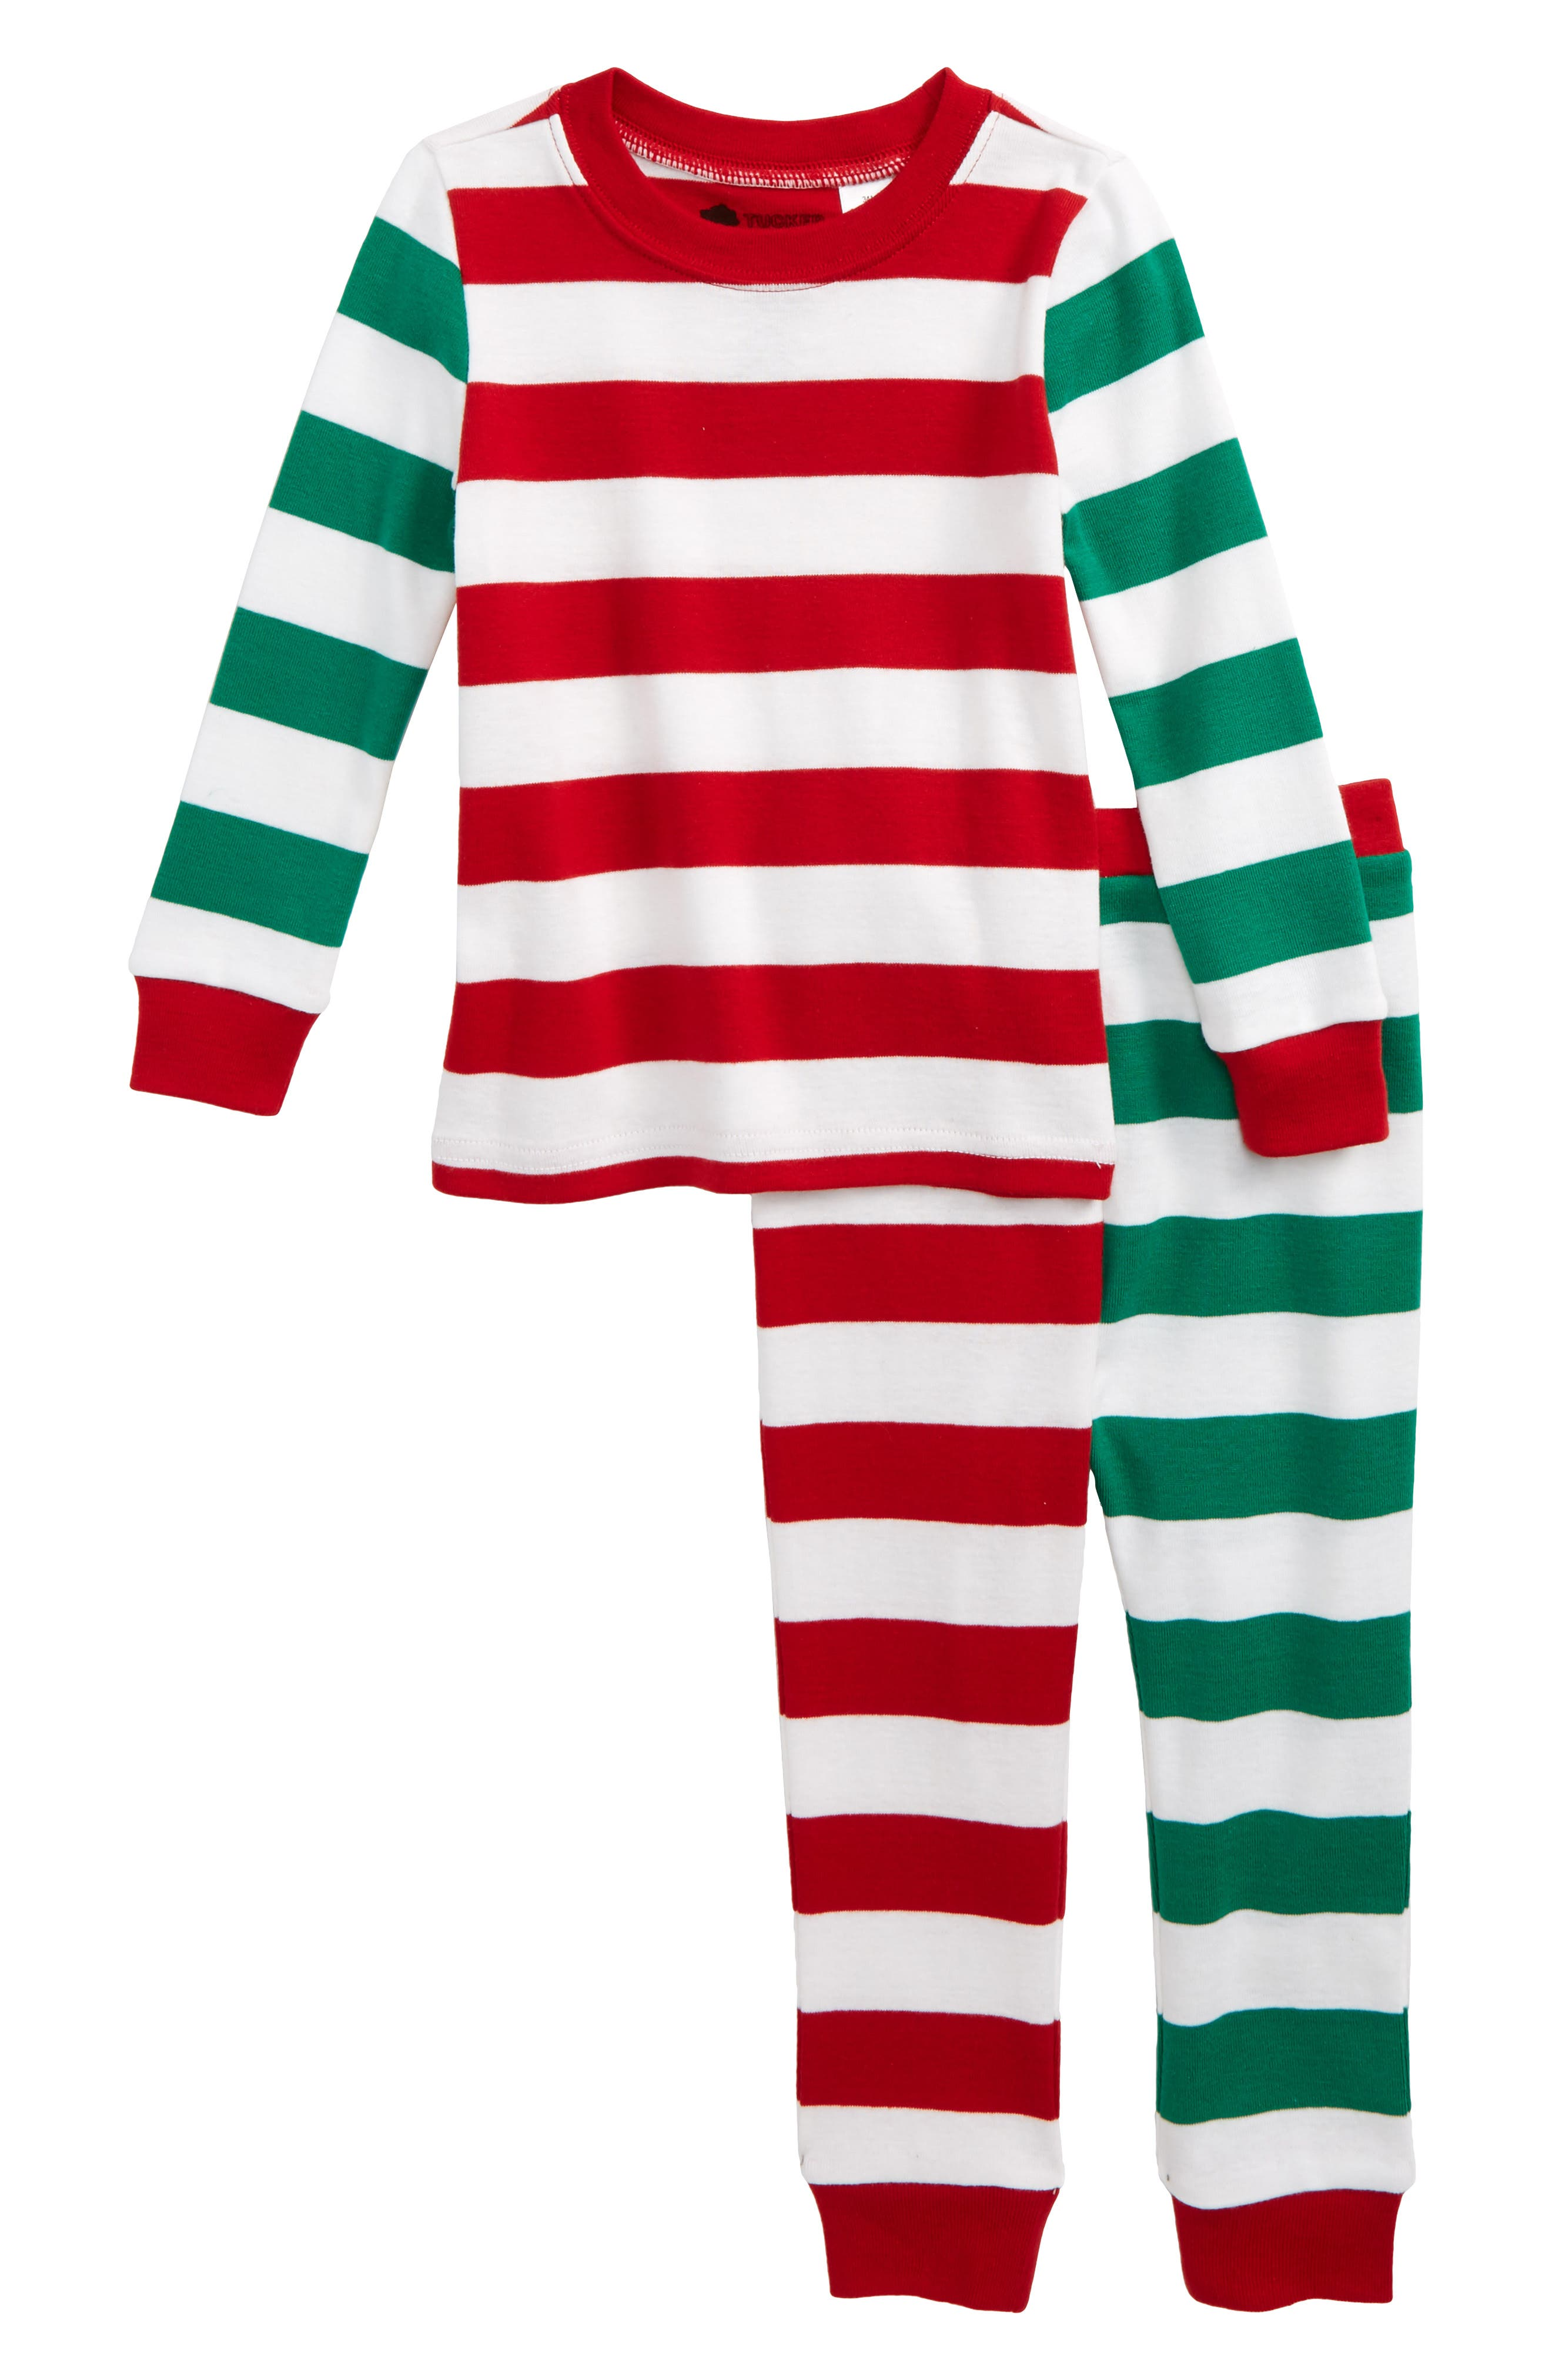 Fitted Two-Piece Pajamas,                             Main thumbnail 1, color,                             Red Sage- Green Mixed Stripe